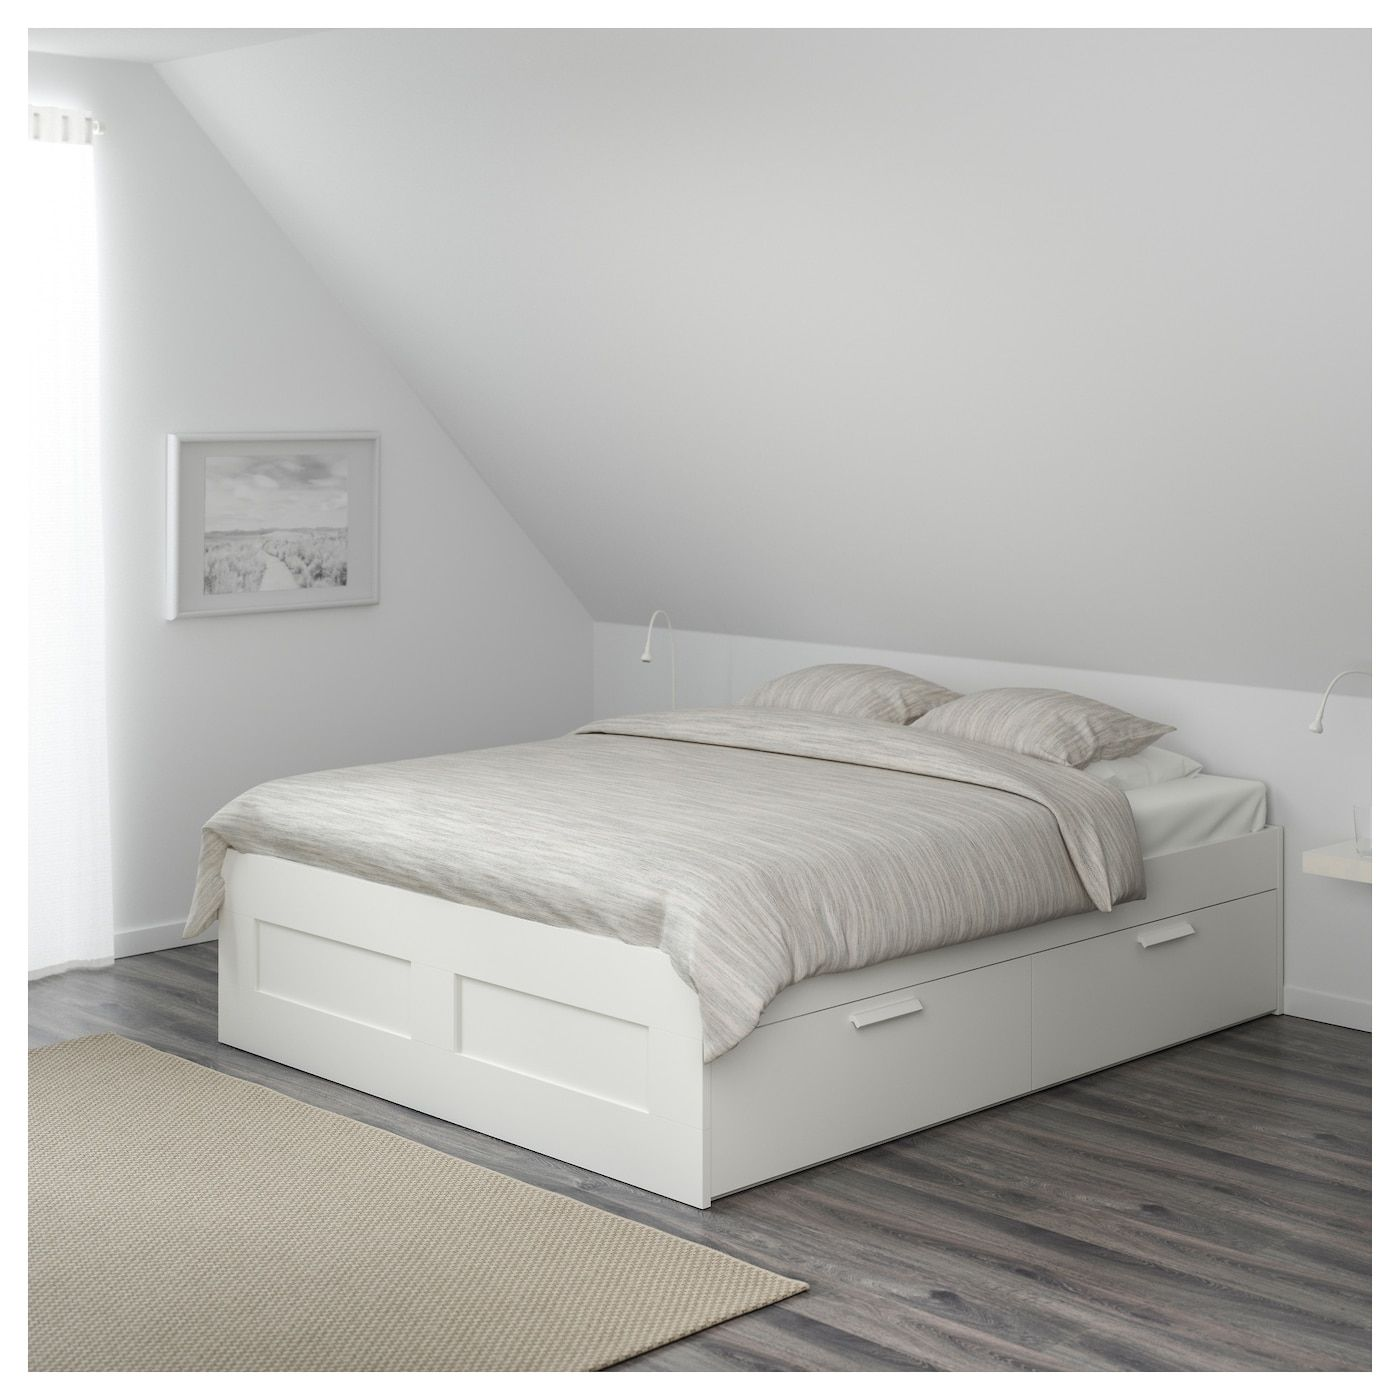 Brimnes Bettgestell Mit Schubladen Weiss Luroy Ikea Deutschland Ikea Bed Frames Bed Frame With Storage Bed Storage Drawers